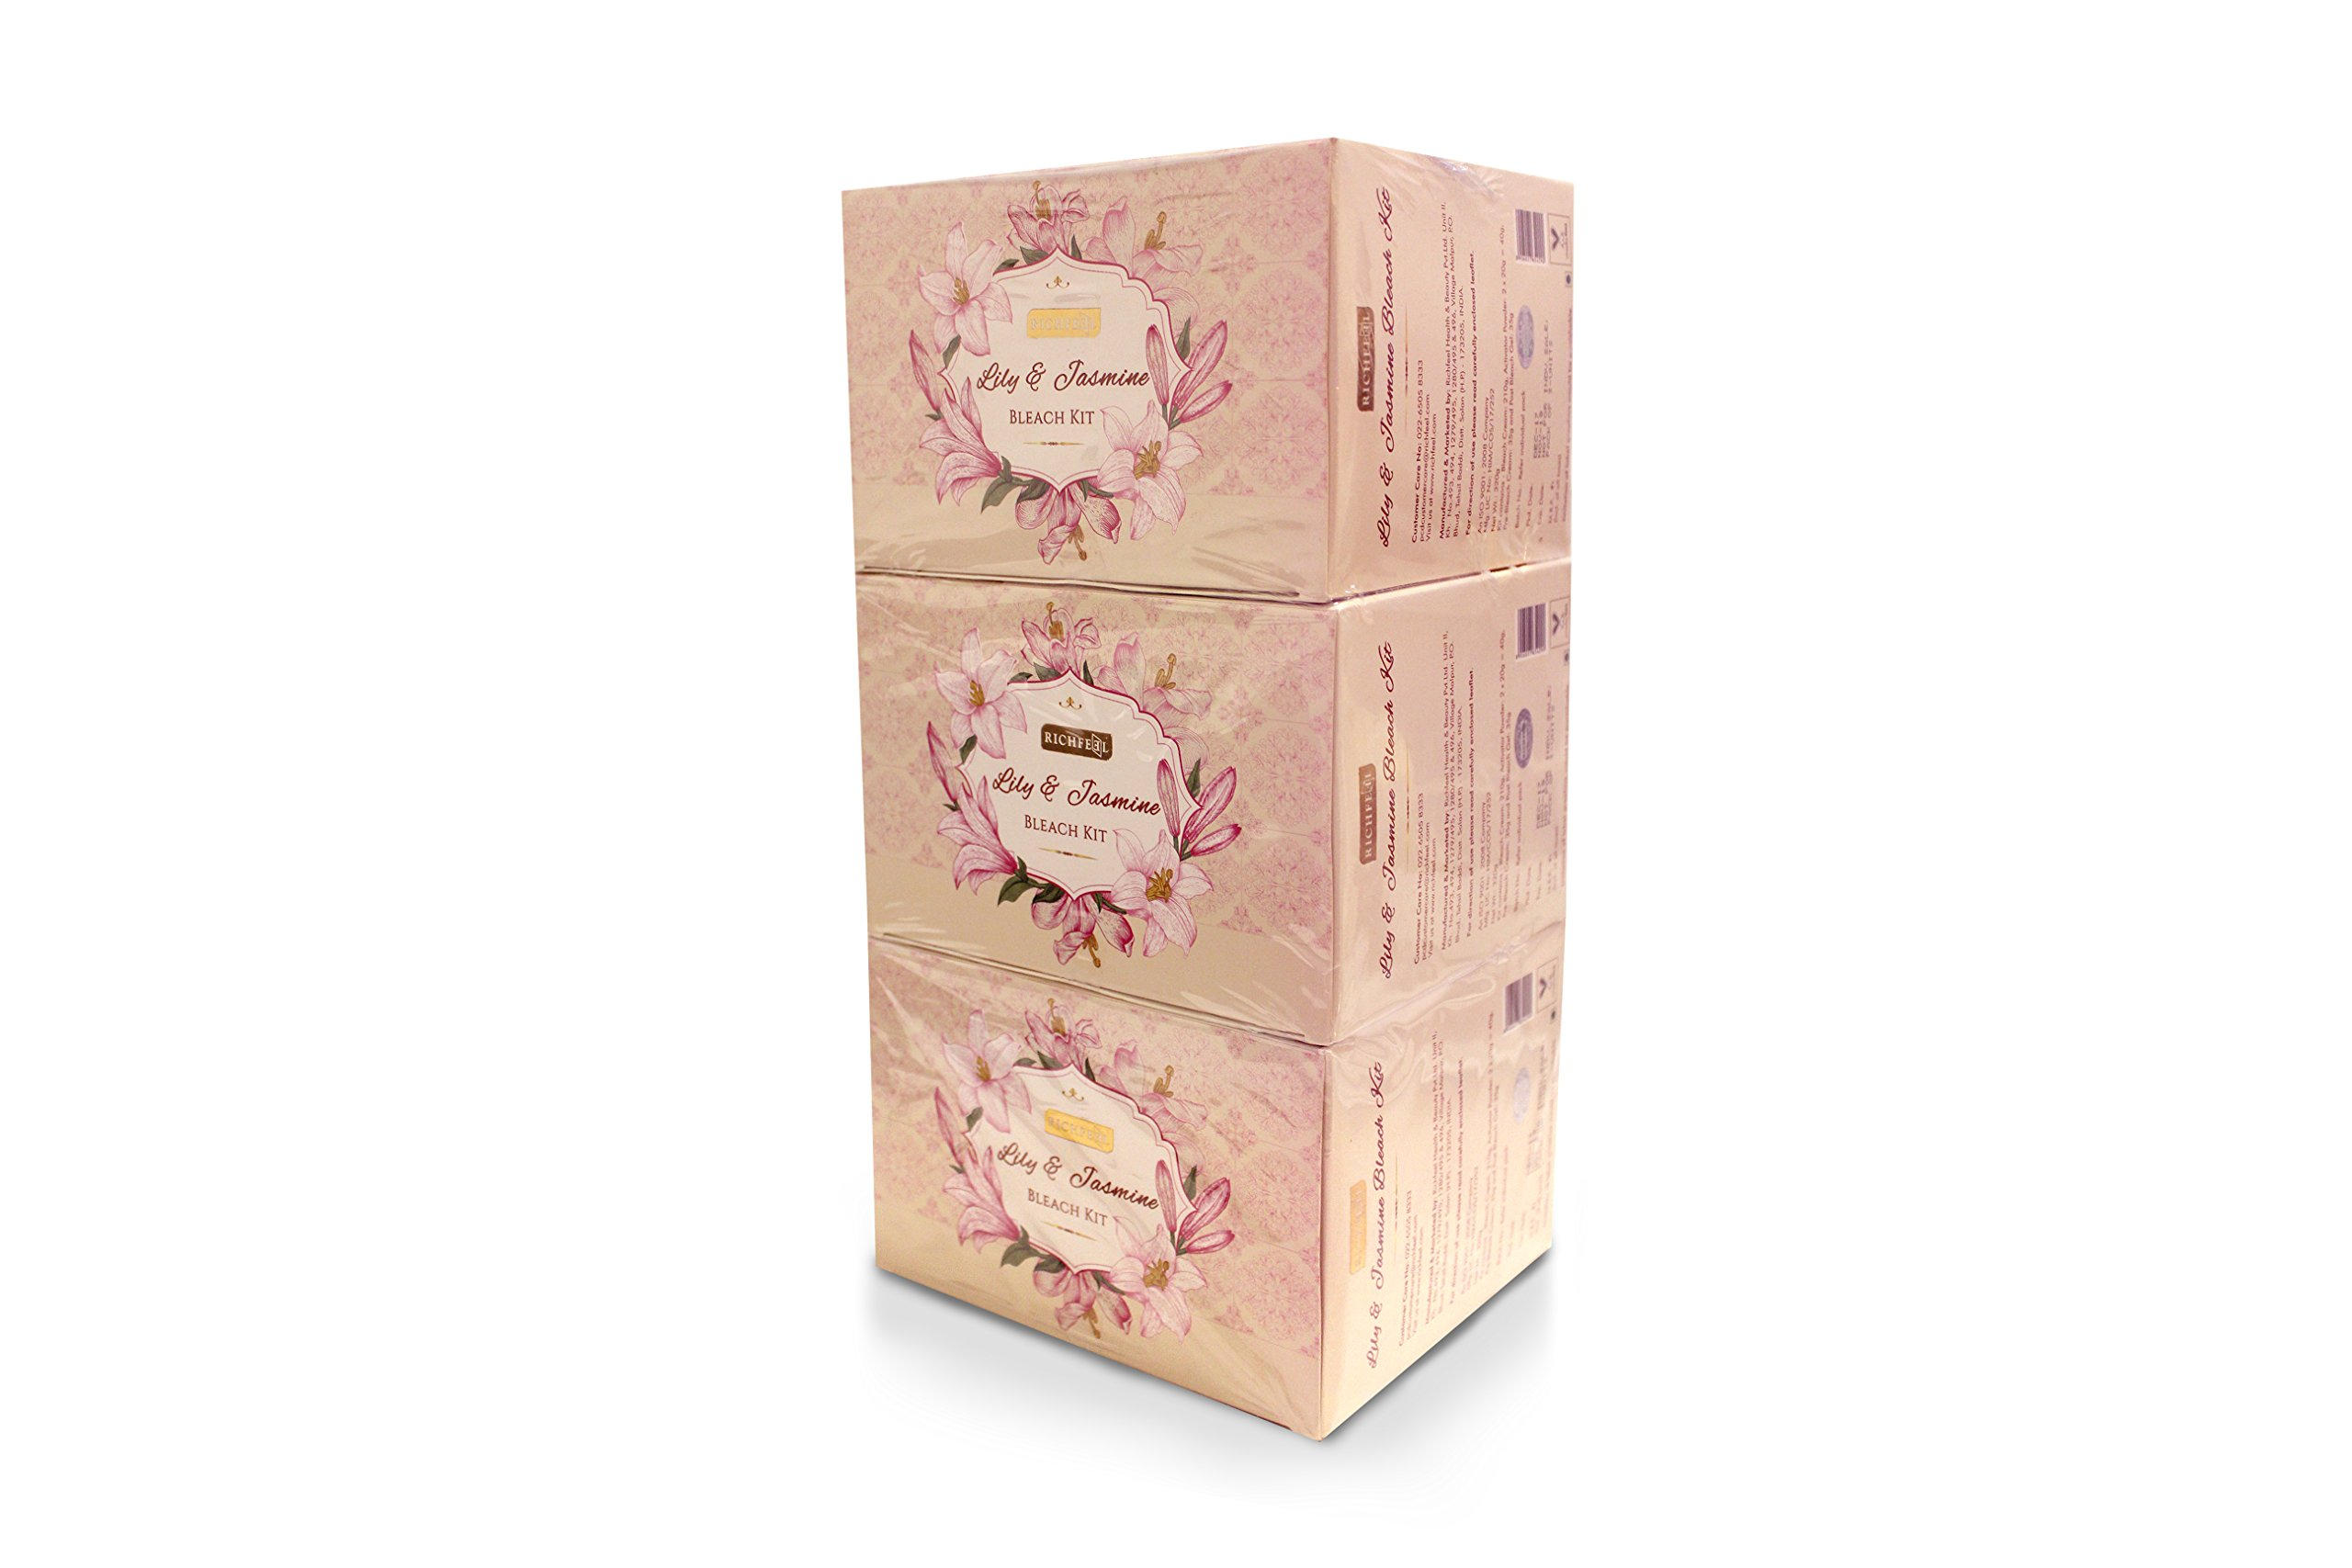 Richfeel Lily and Jasmine Bleach kit 320g (2+1) by Richfeel (Image #2)